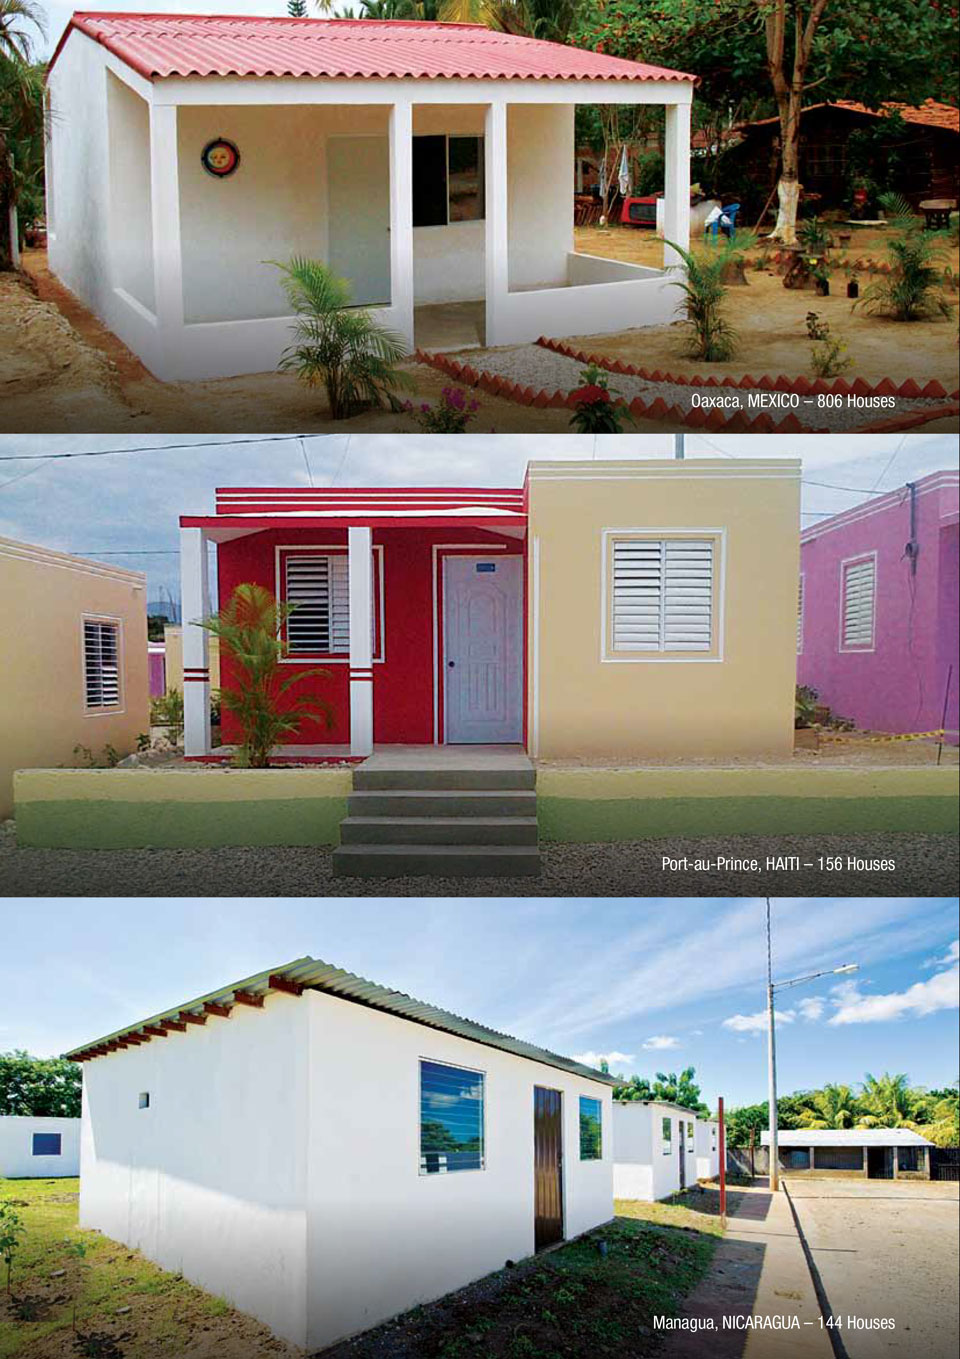 An image showing some of the projects CEMEX has done with the Disaster Relief Housing solution.